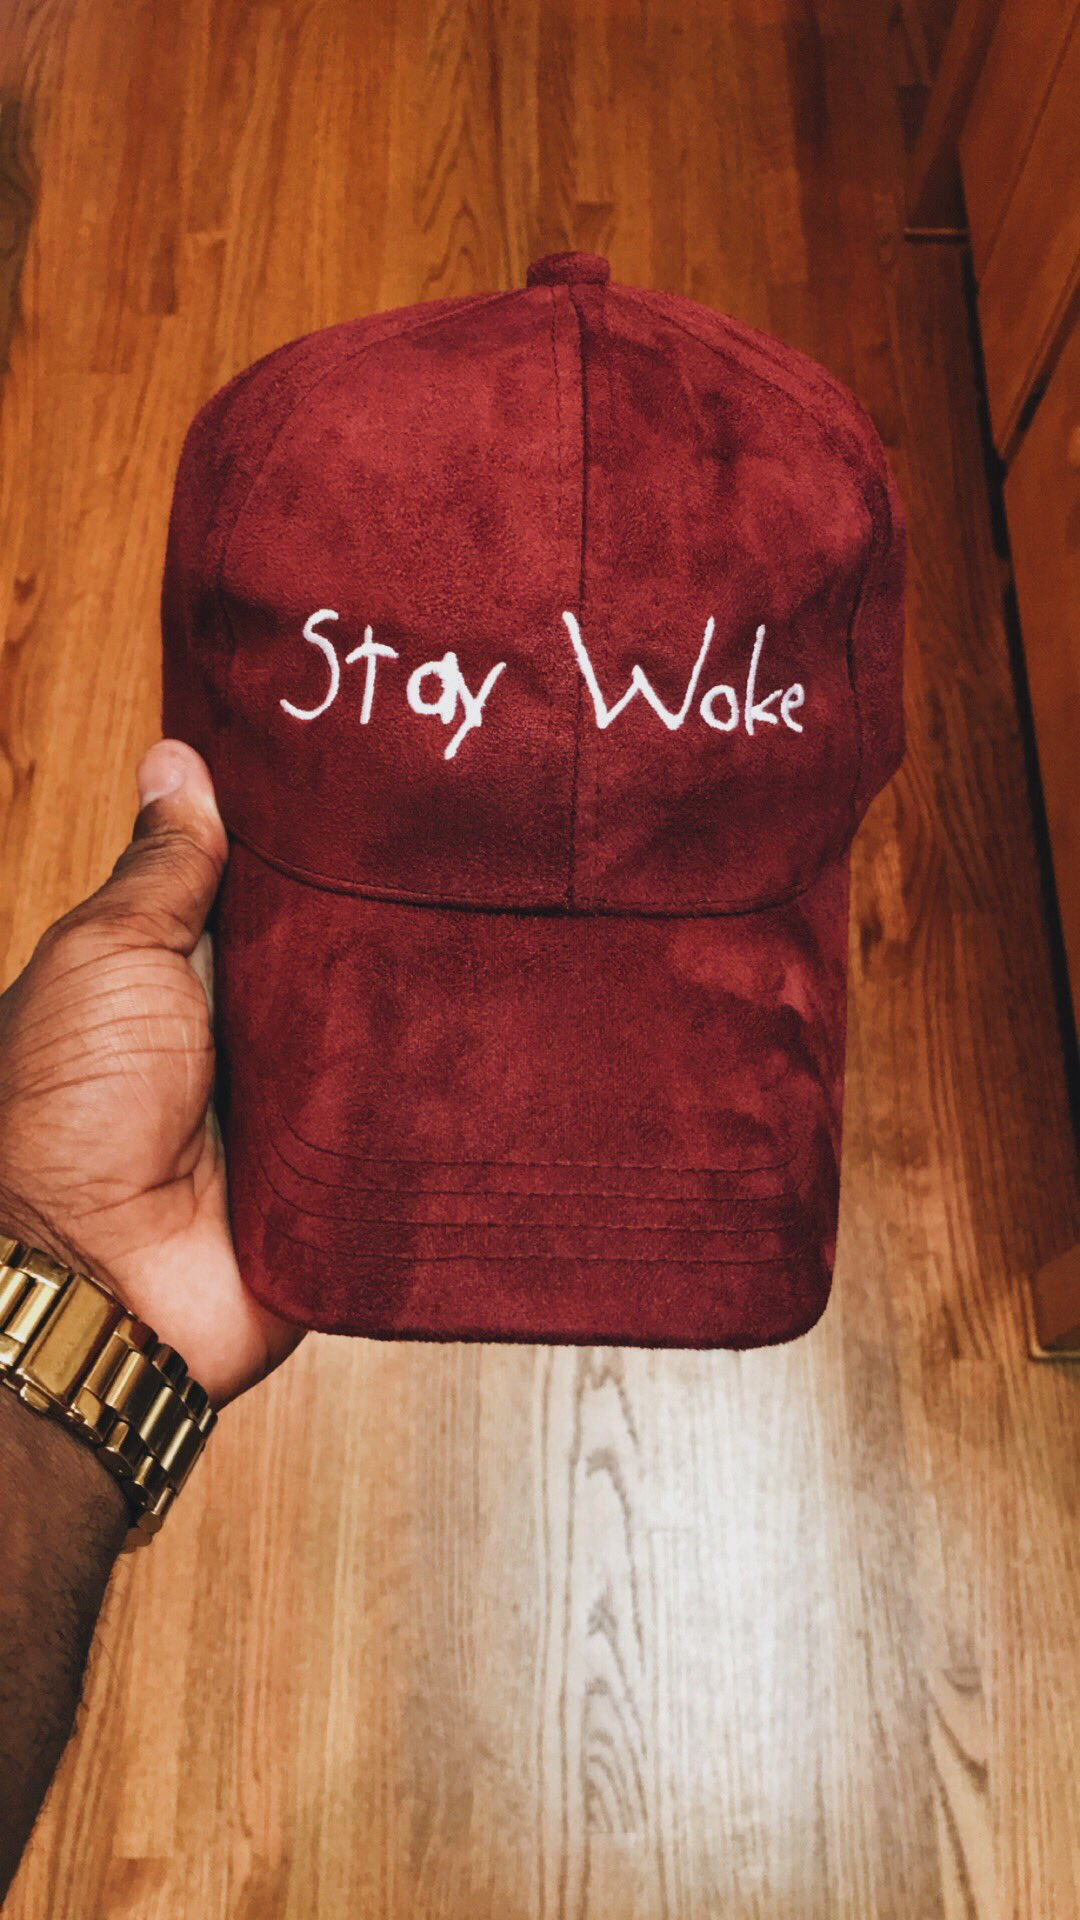 Pin by Deanna💘✨ on Dad Hats  779ed20cb3a3